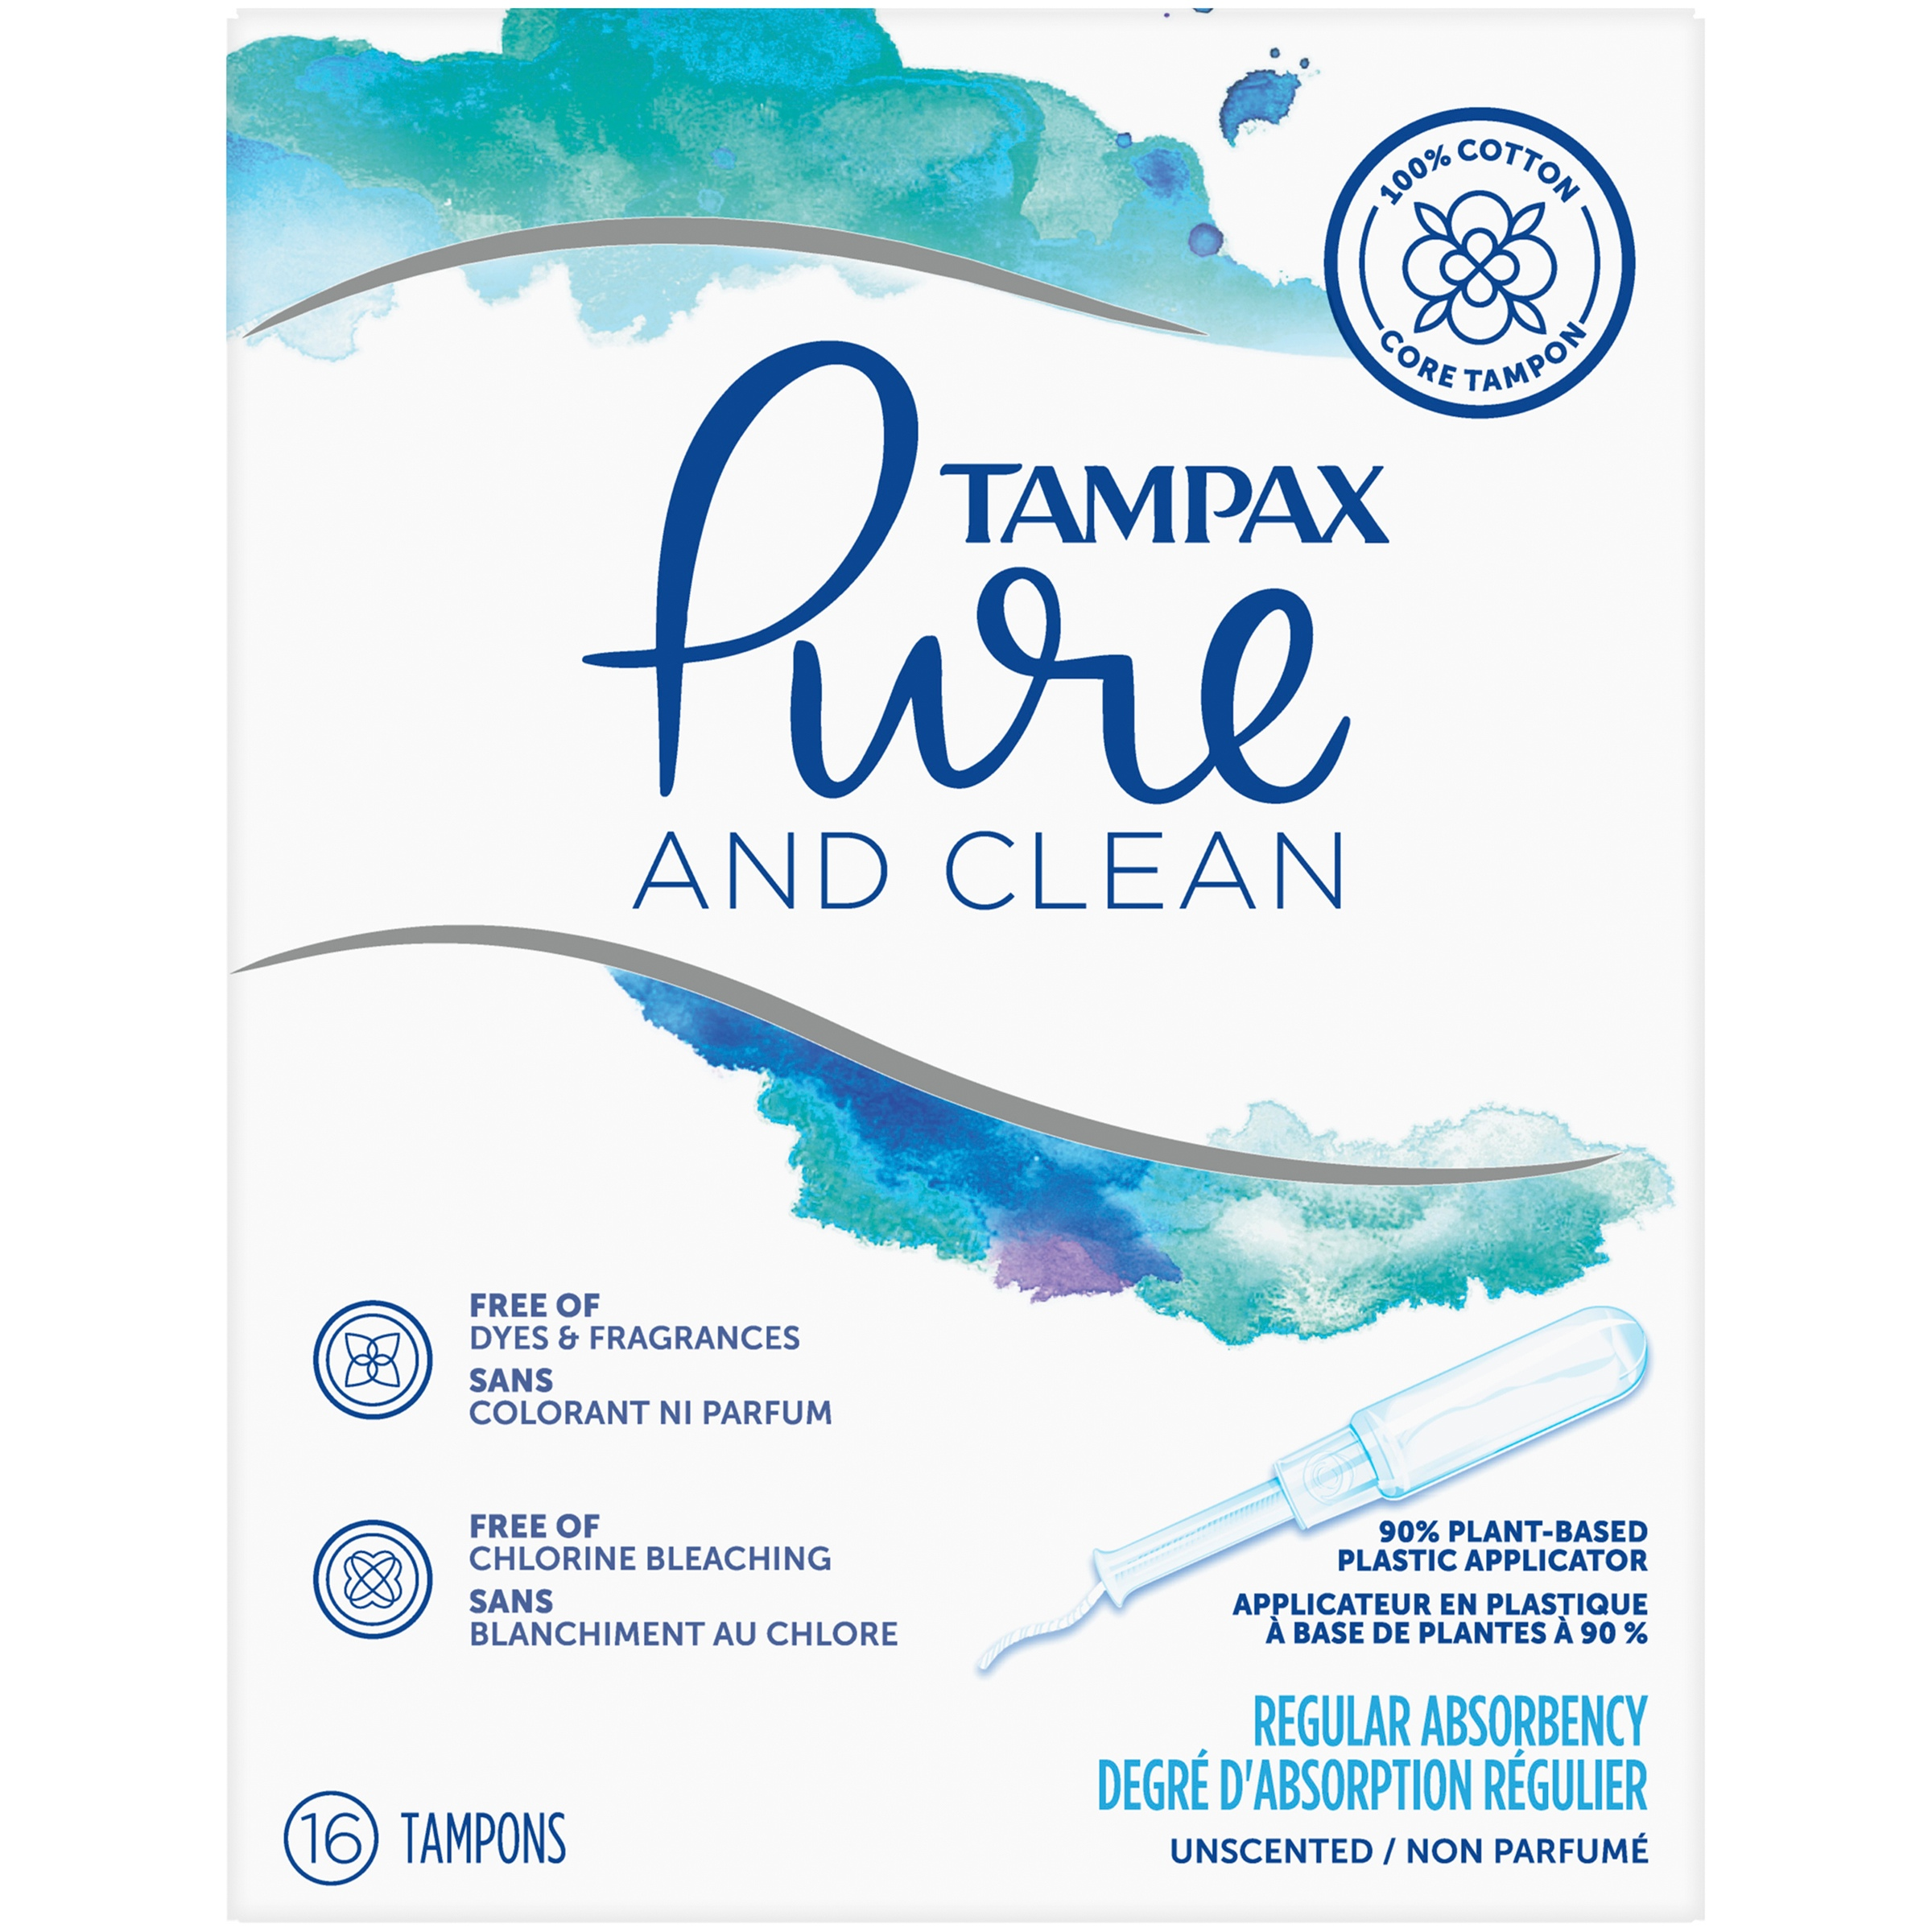 Tampax Pure & Clean Tampons with Plastic Applicator and 100% Cotton Core, Regular Absorbency, 16 Count